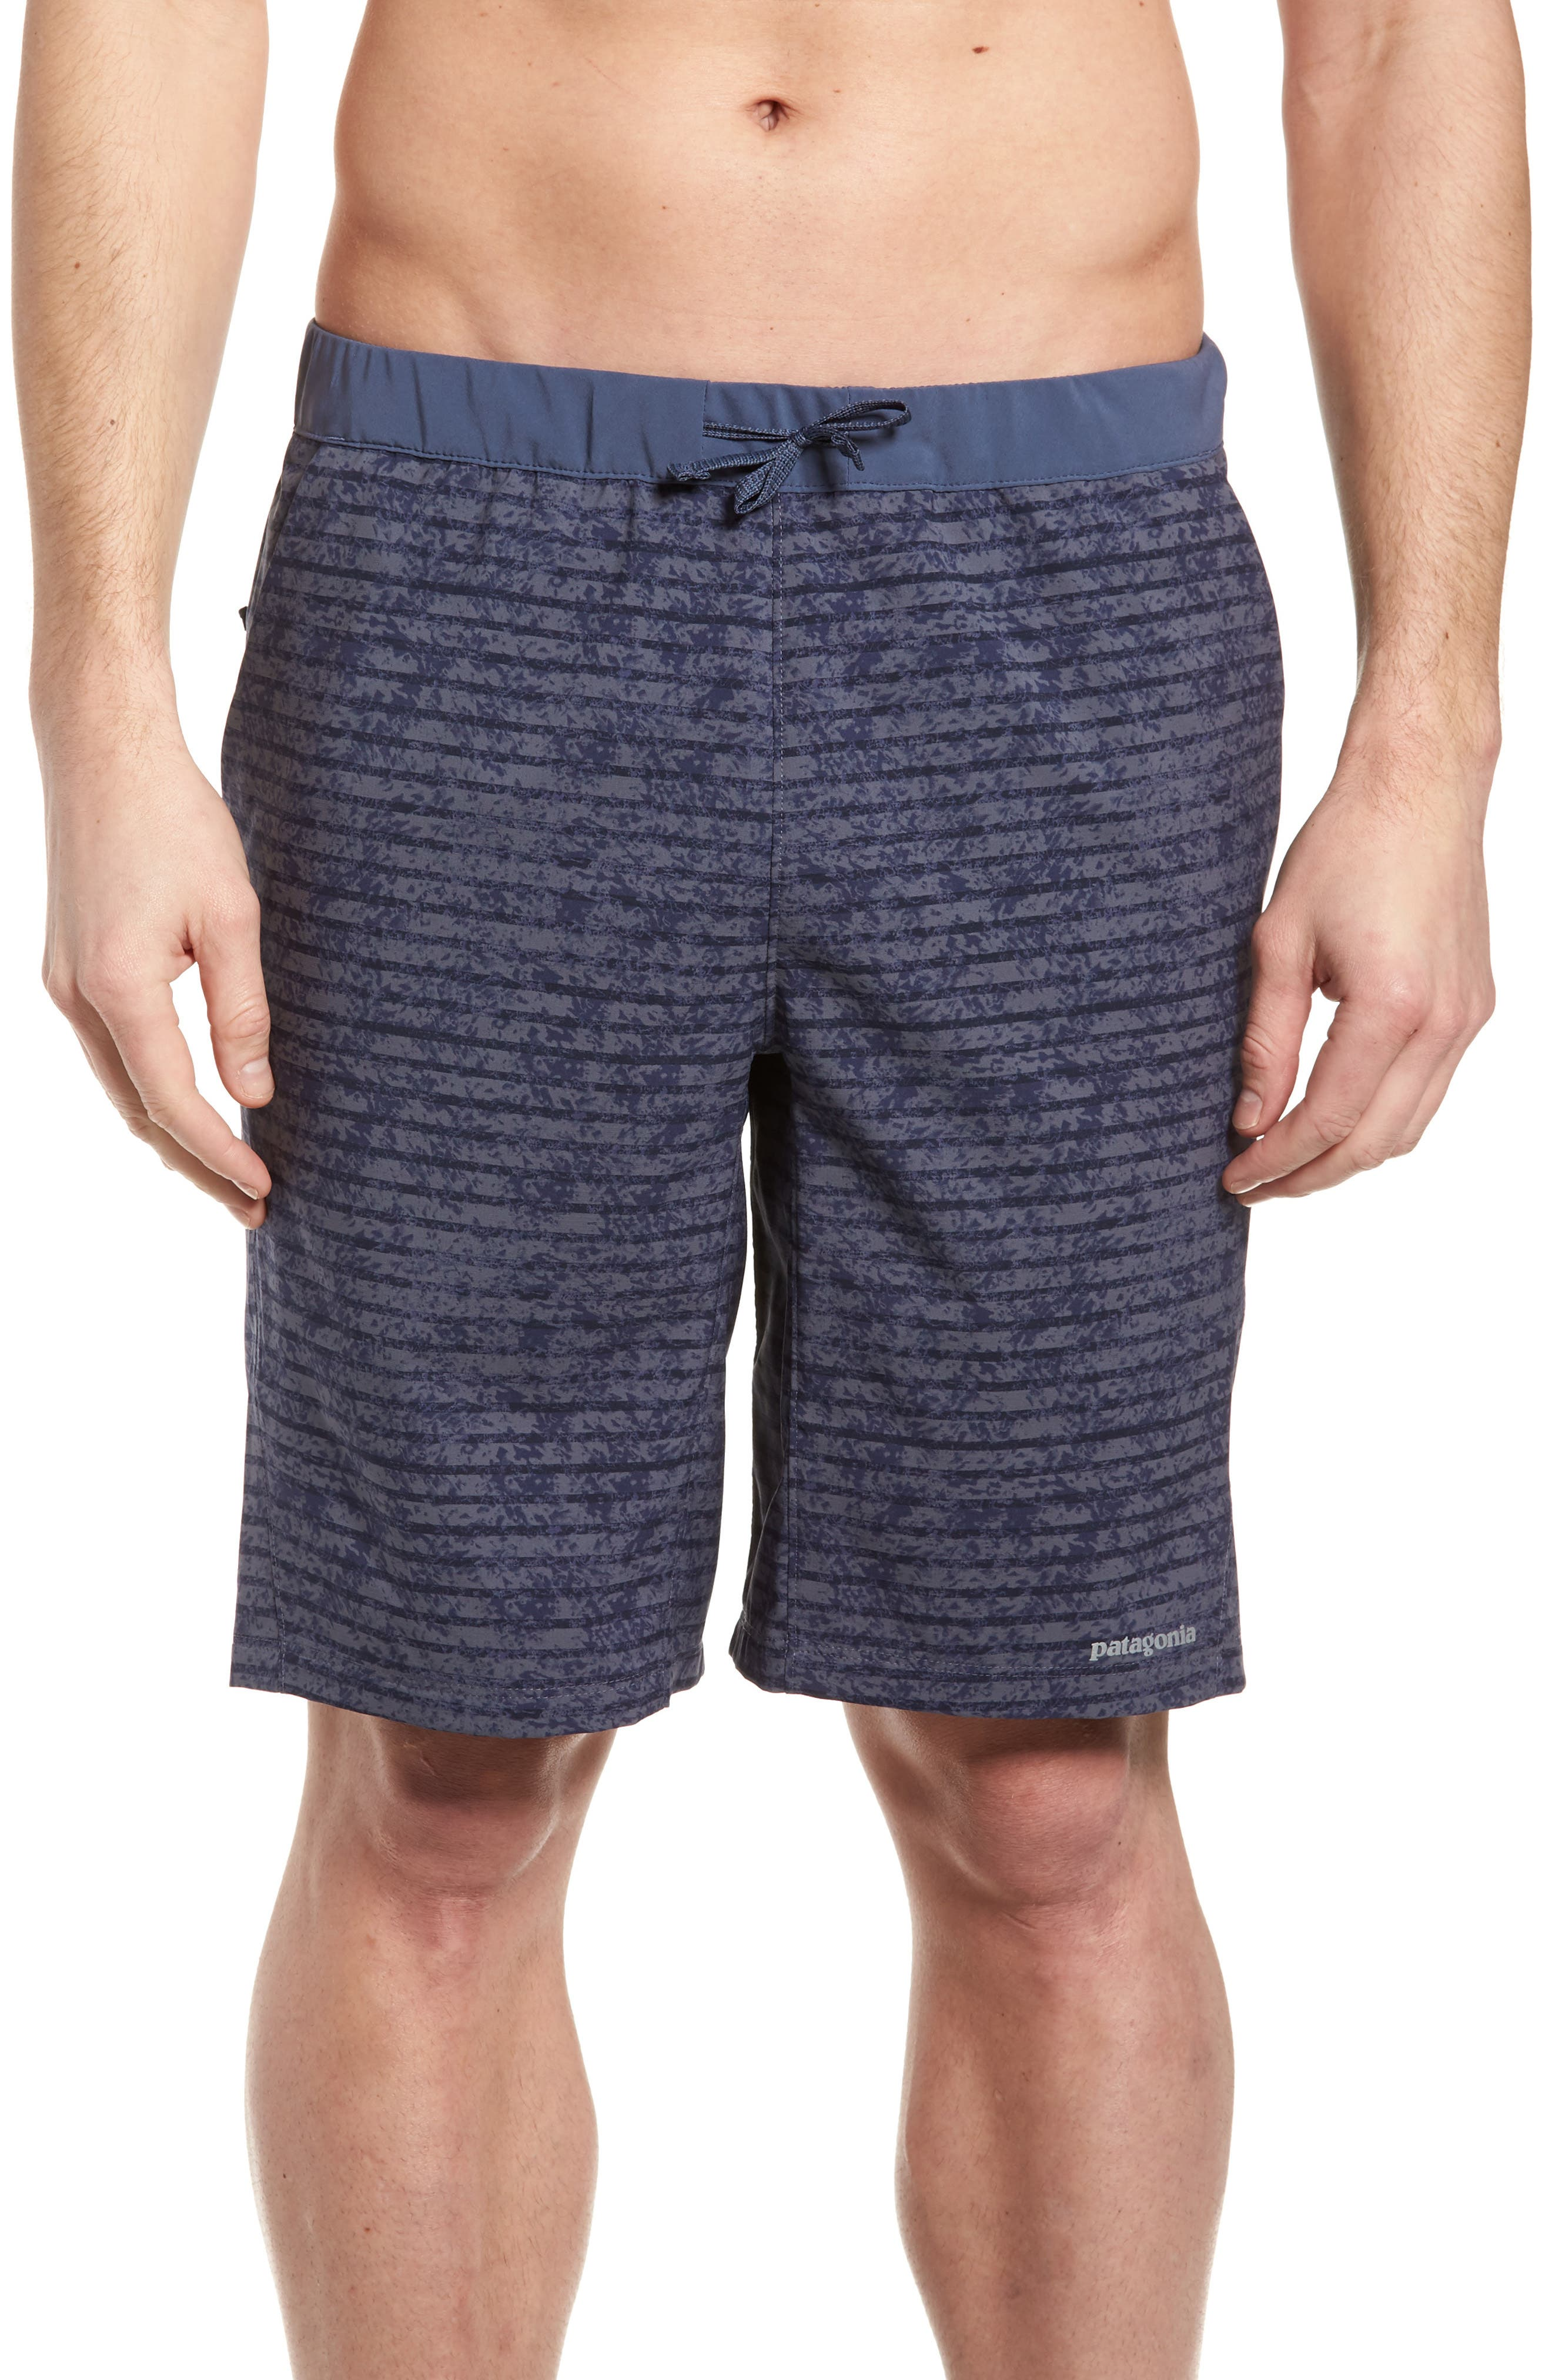 Terrebonne Shorts,                             Main thumbnail 1, color,                             Rugby Rock/ Dolomite Blue